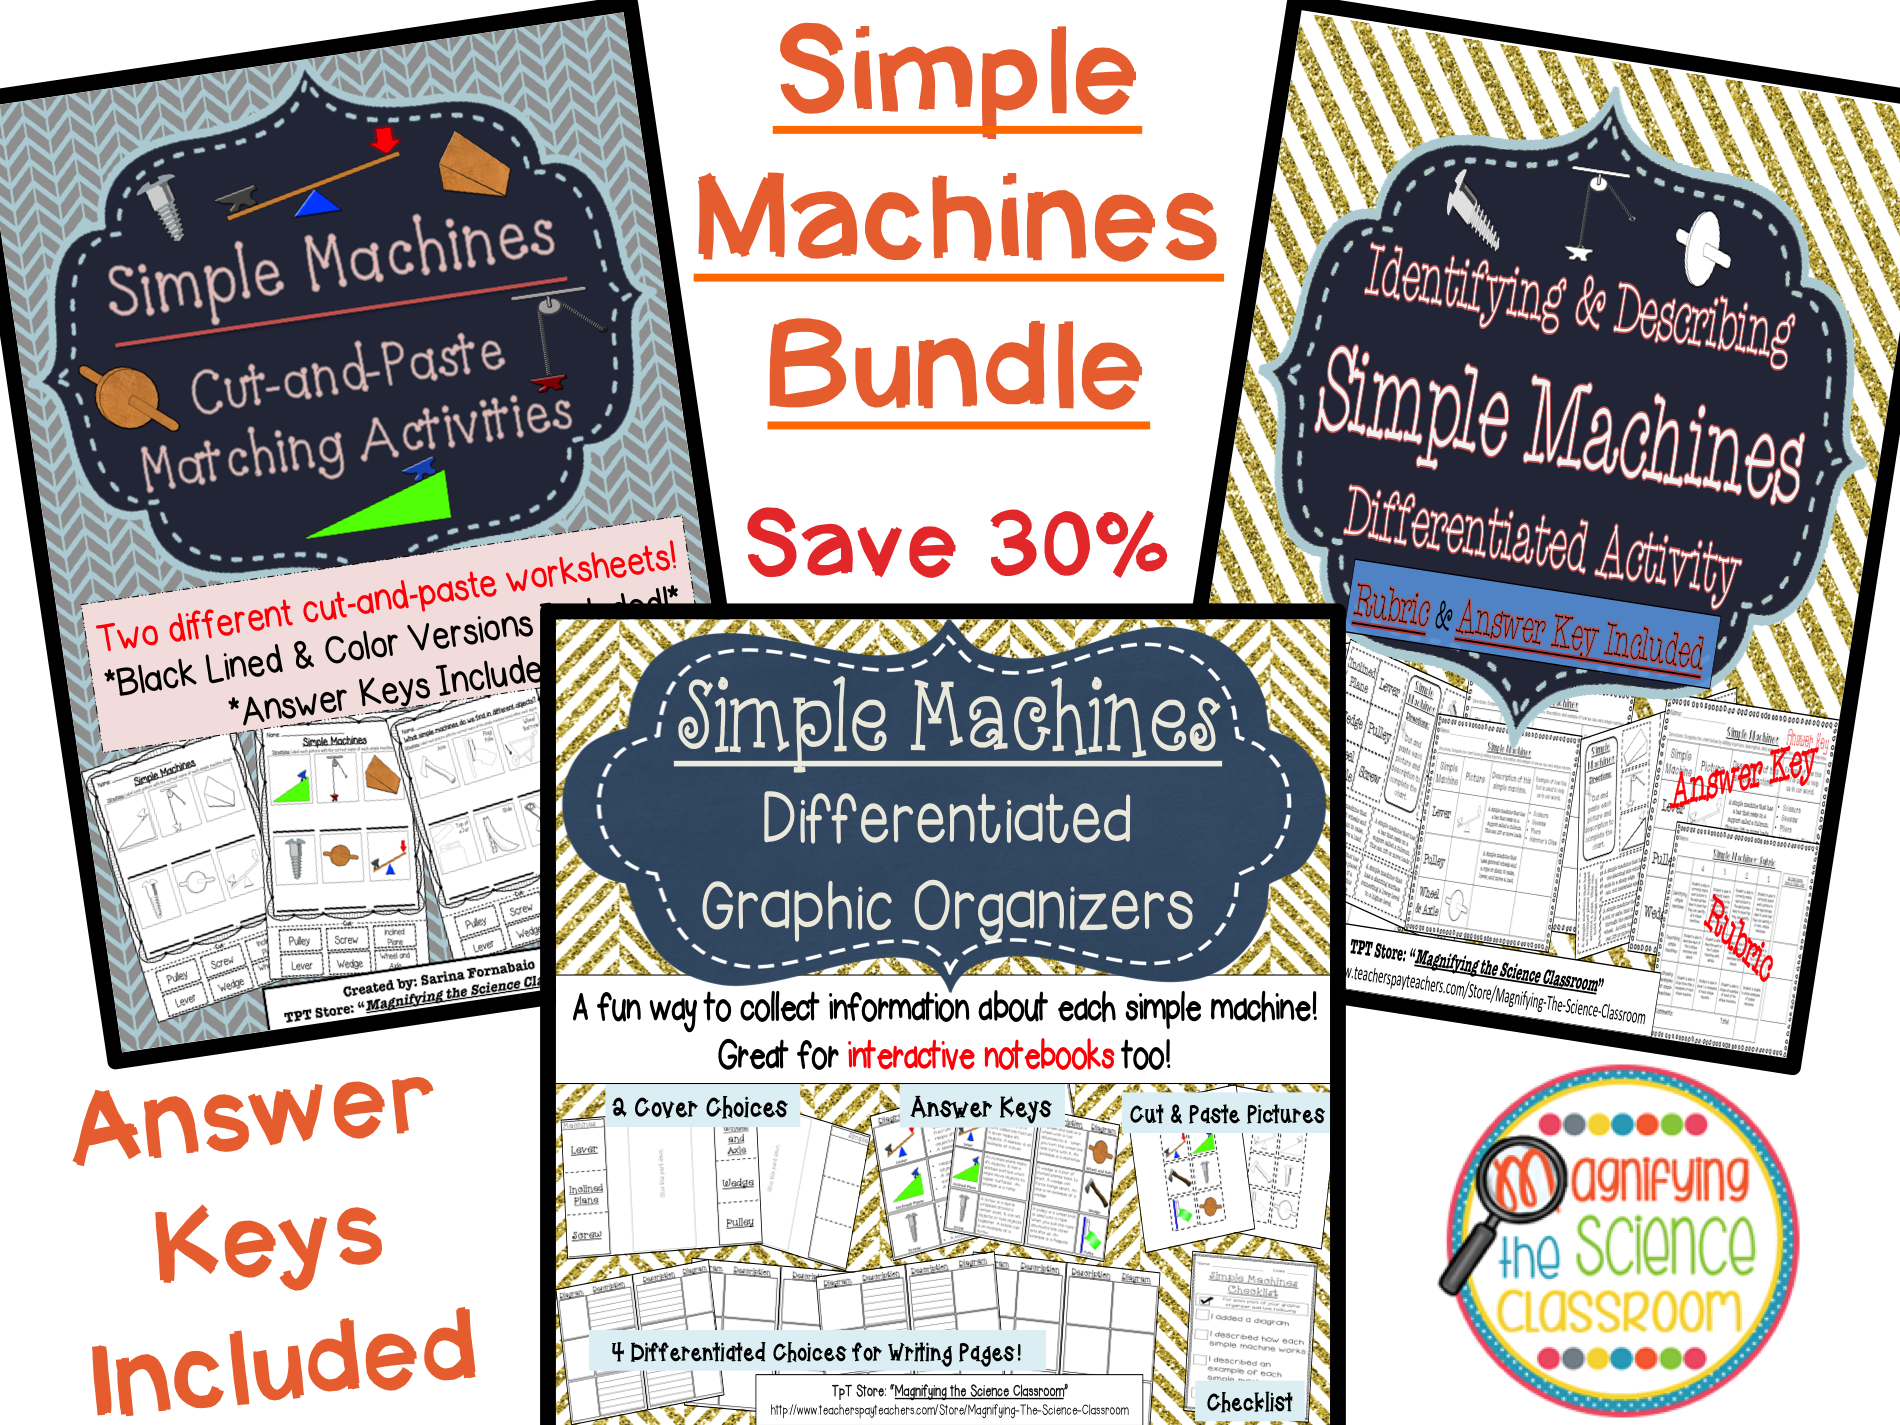 Worksheet Simple Machines Games Fun